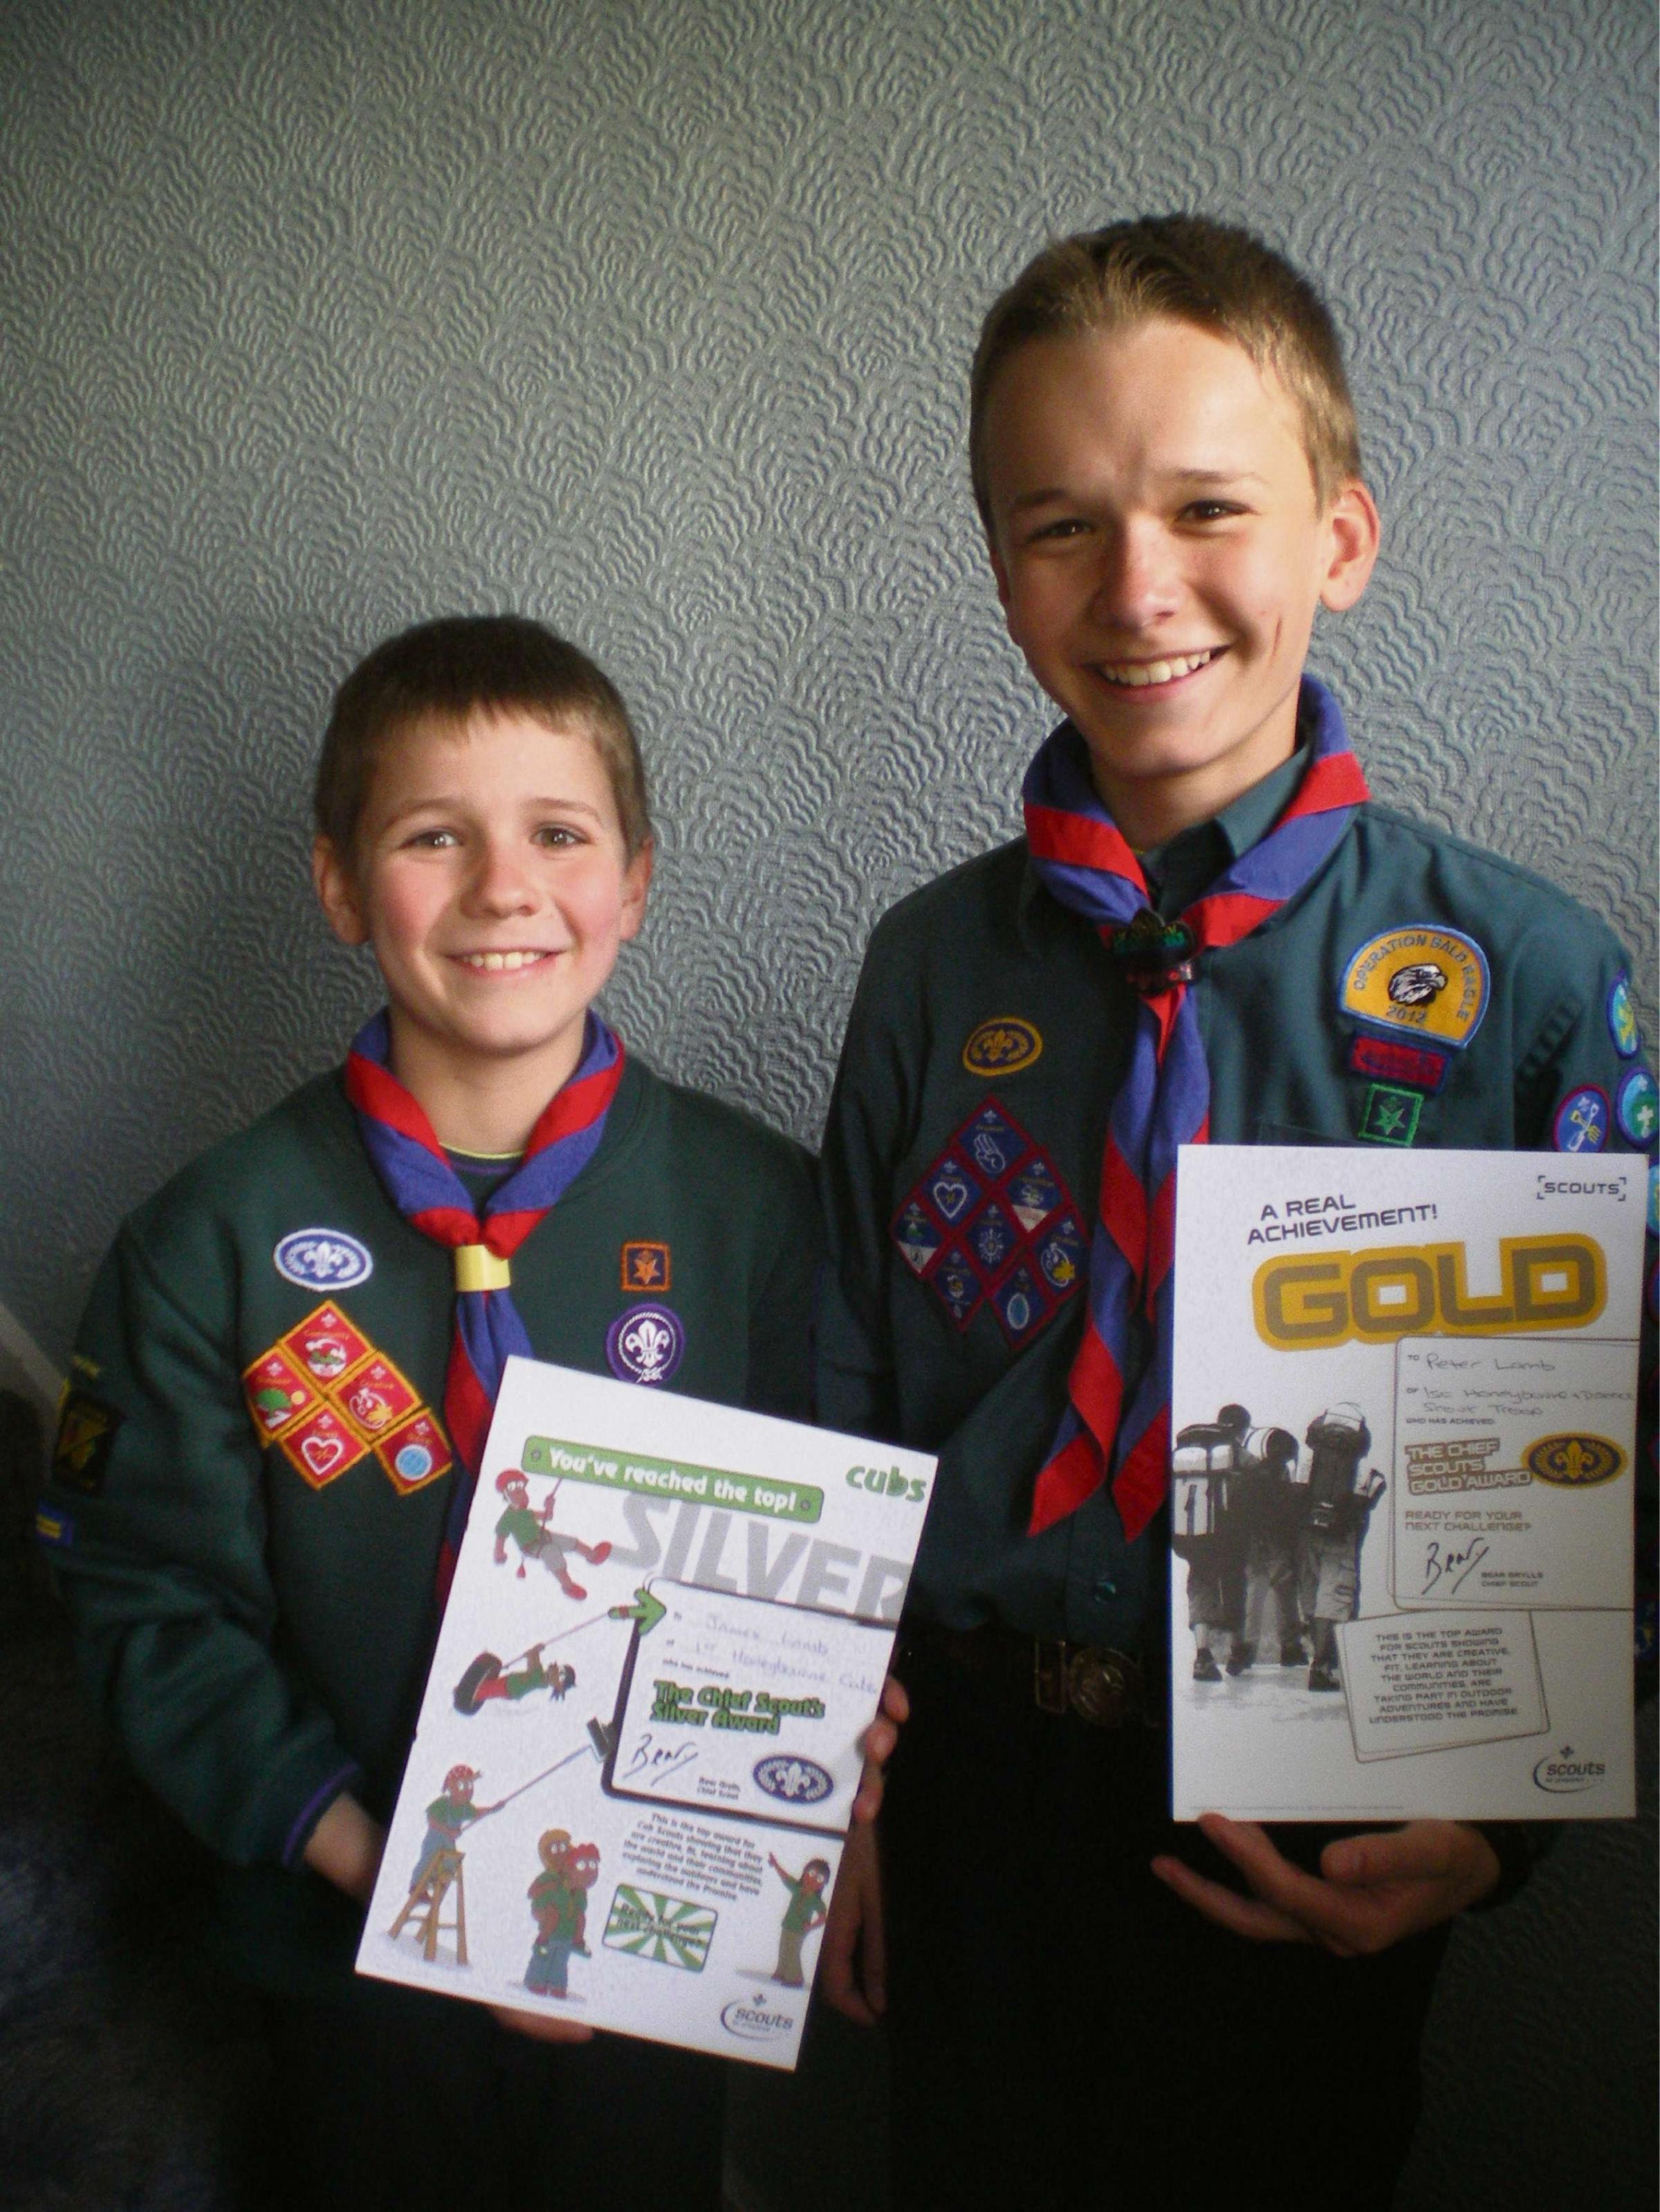 James and Peter Lamb celebrate their Scouting awards.